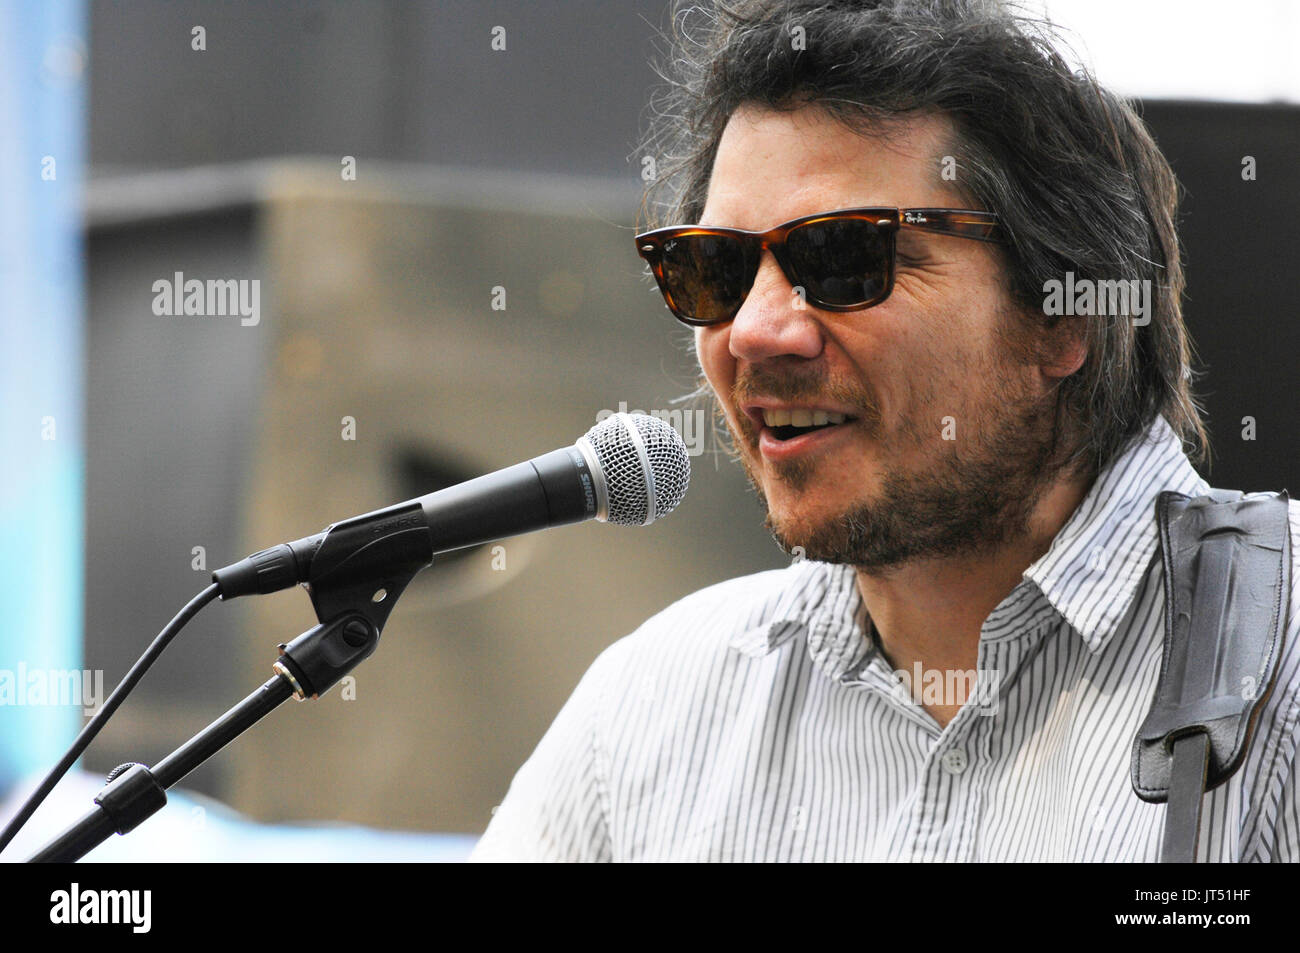 Jeff Tweedy Wilco performing 2008 Lollapalooza Music Festival Grant Park Chicago. - Stock Image